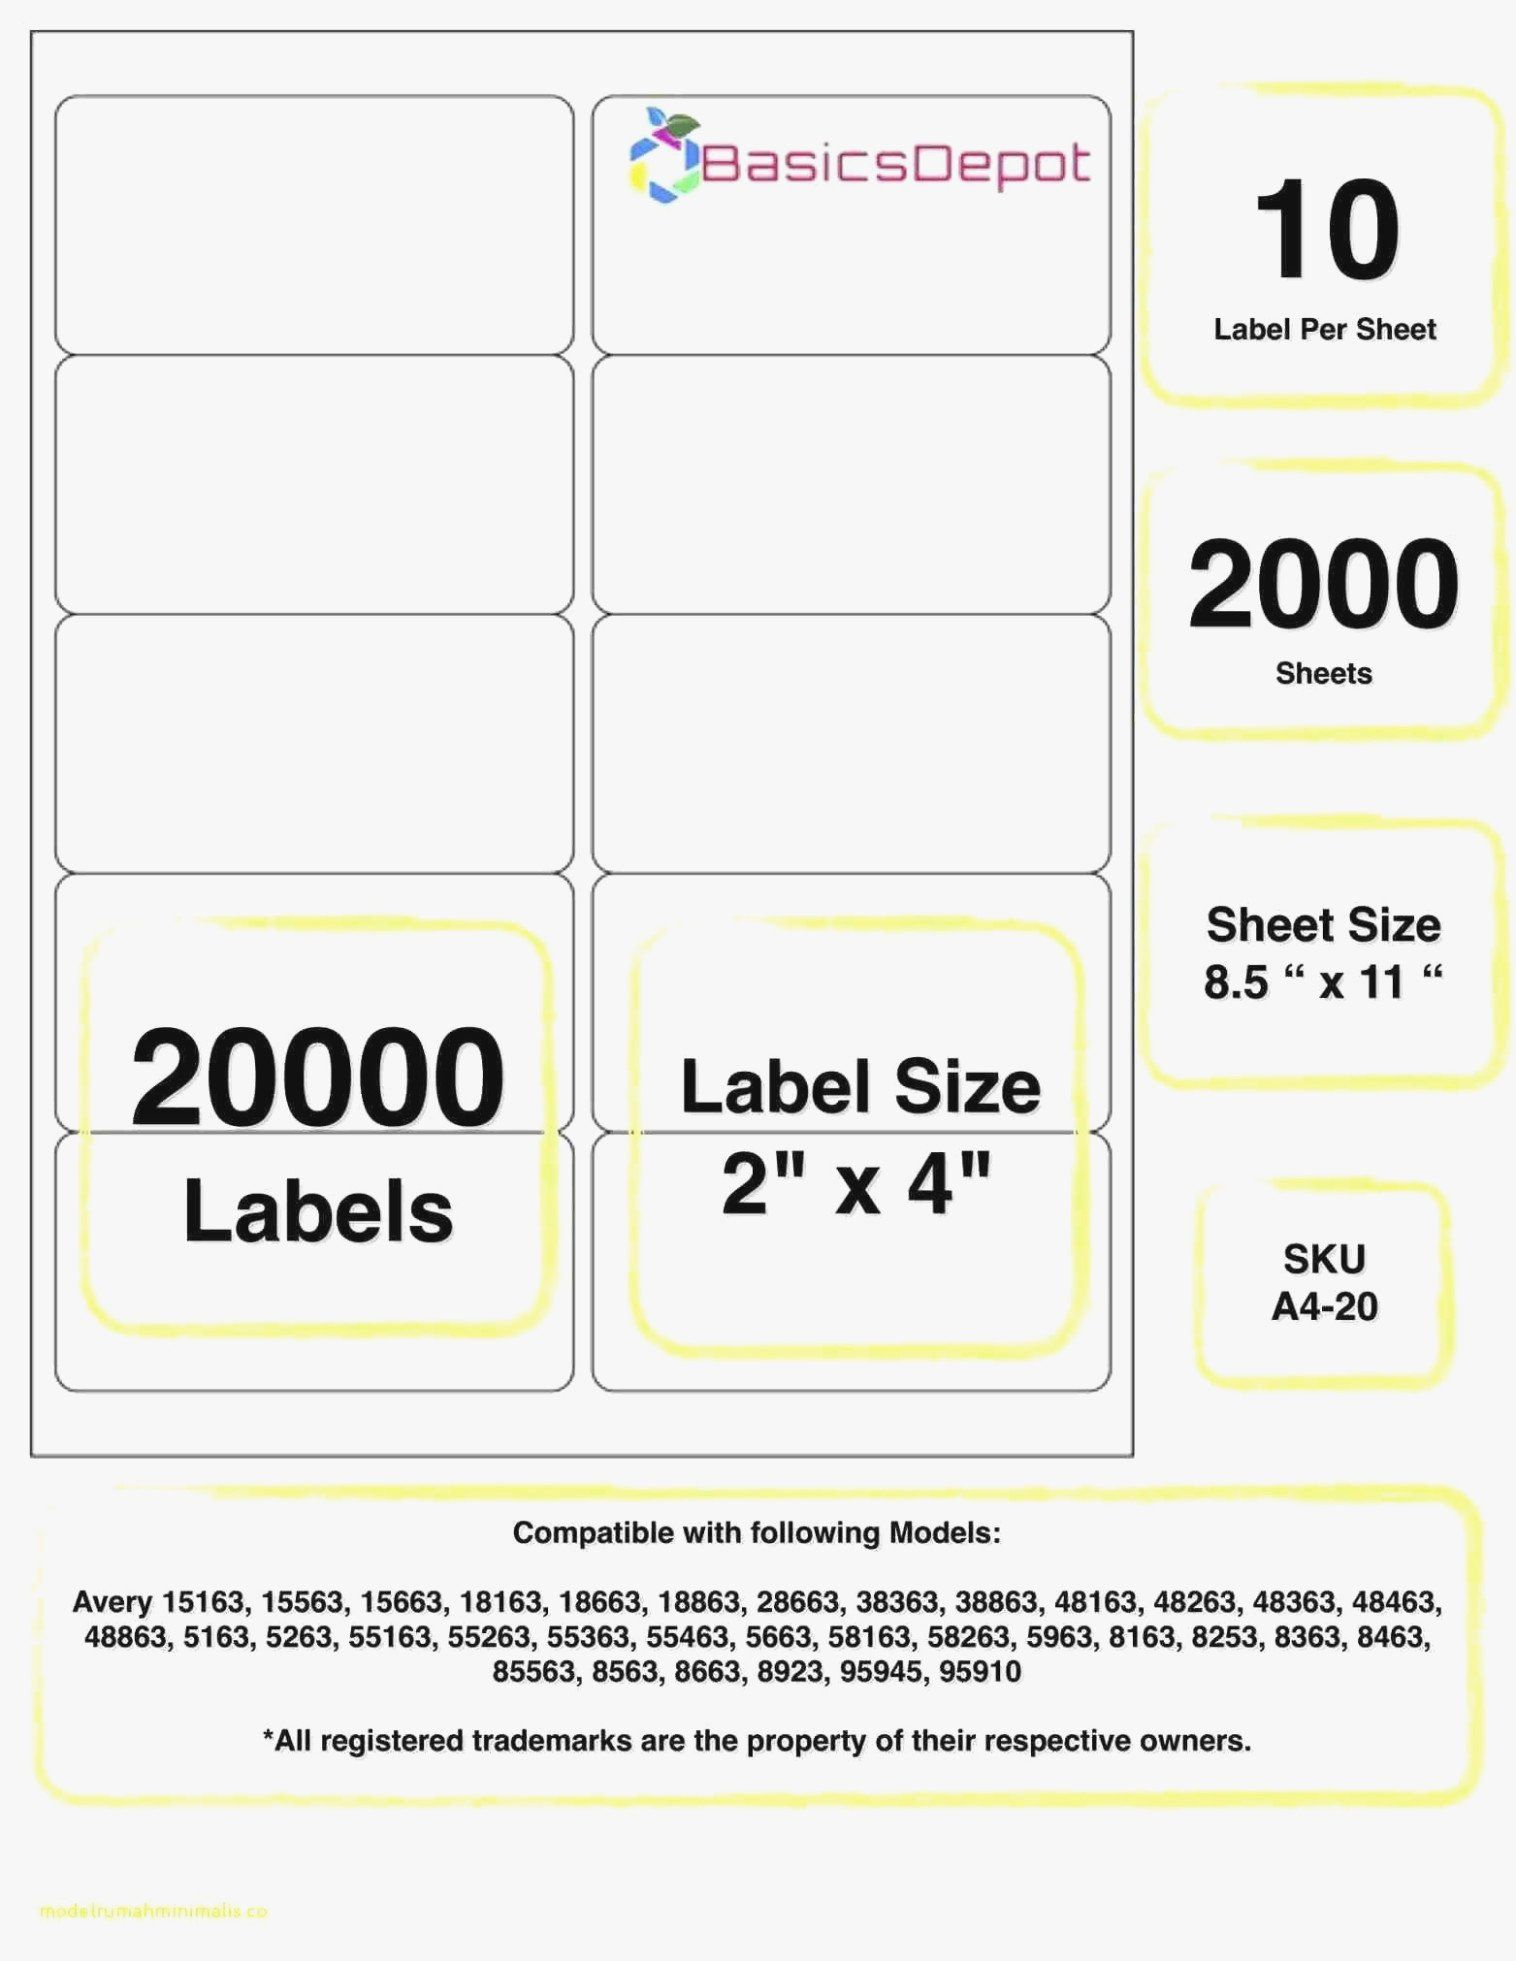 Avery Oval Label Template Awesome Avery Sizes Sprouts San Antonio Label Templates Printable Label Templates Avery Shipping Labels